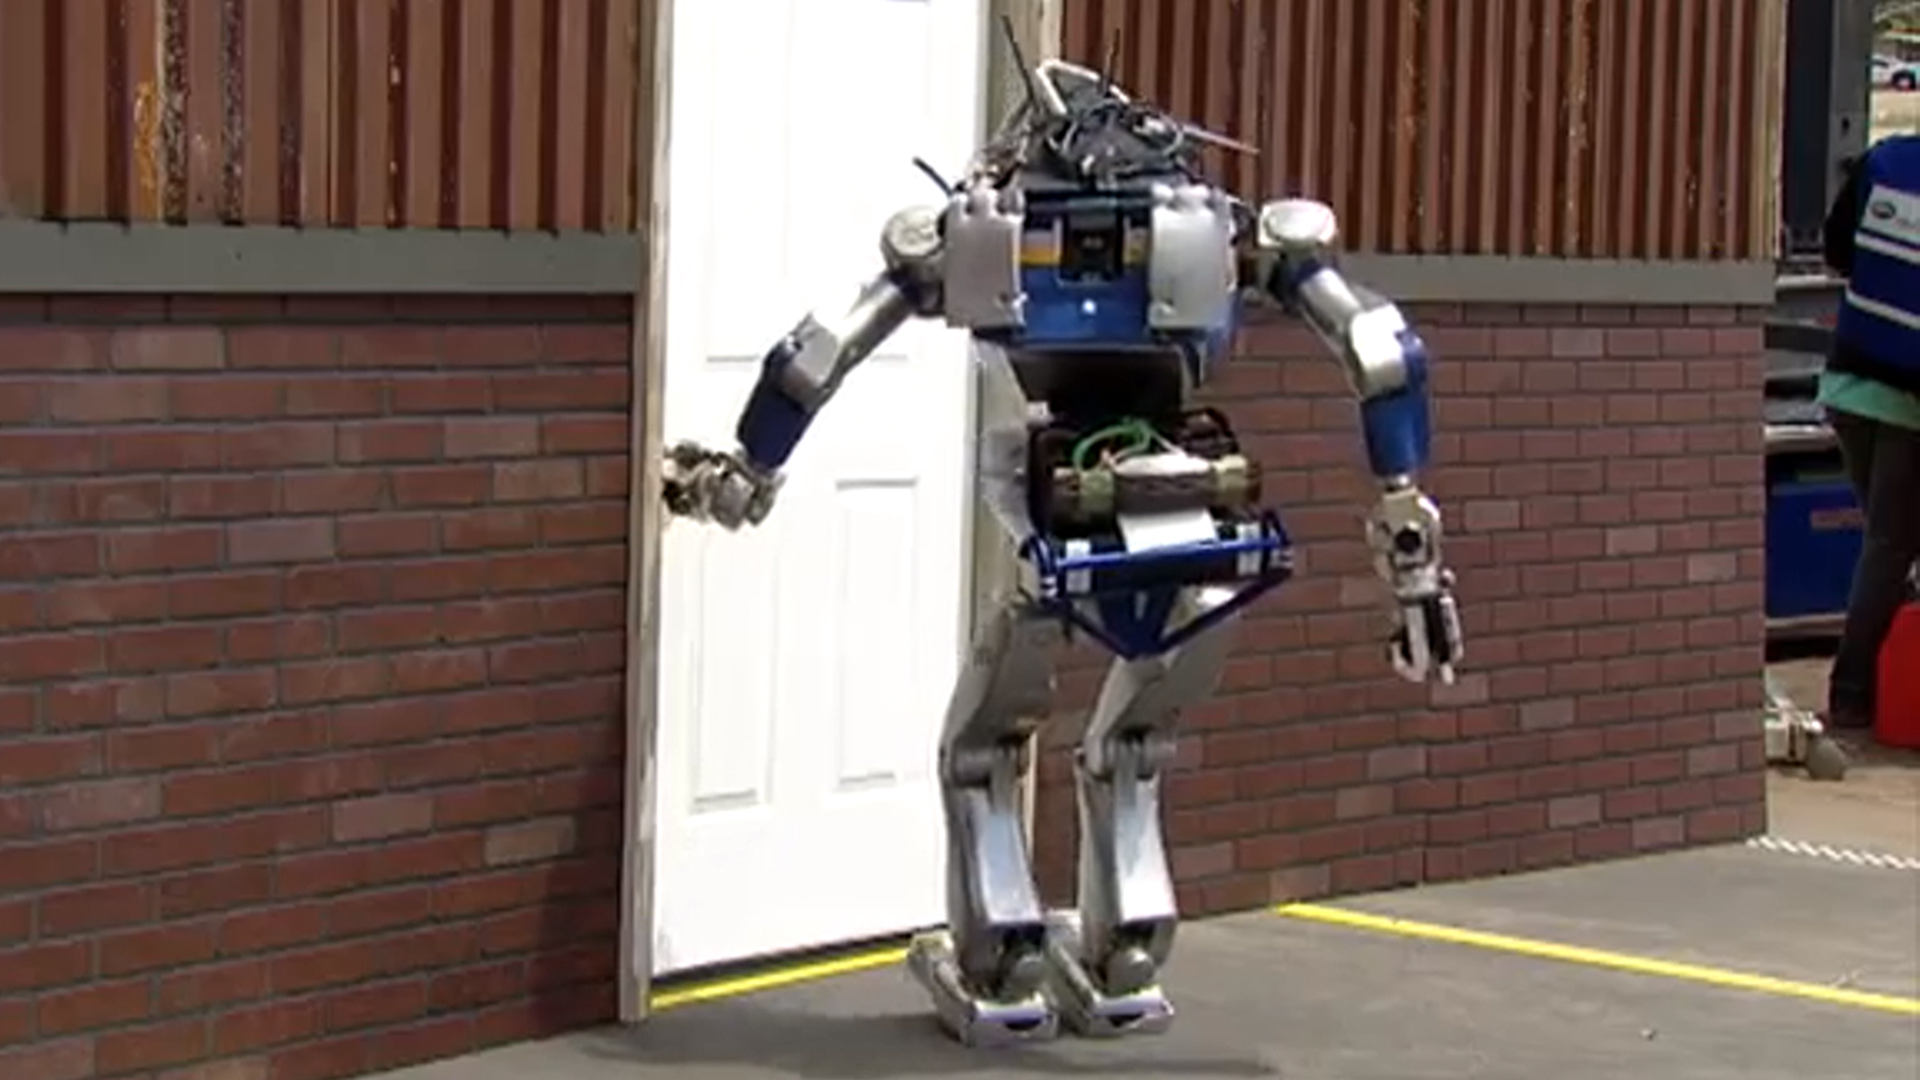 Is That You, Rosie? Humanoid Atlas Robot Takes on Household Cleaning Tasks